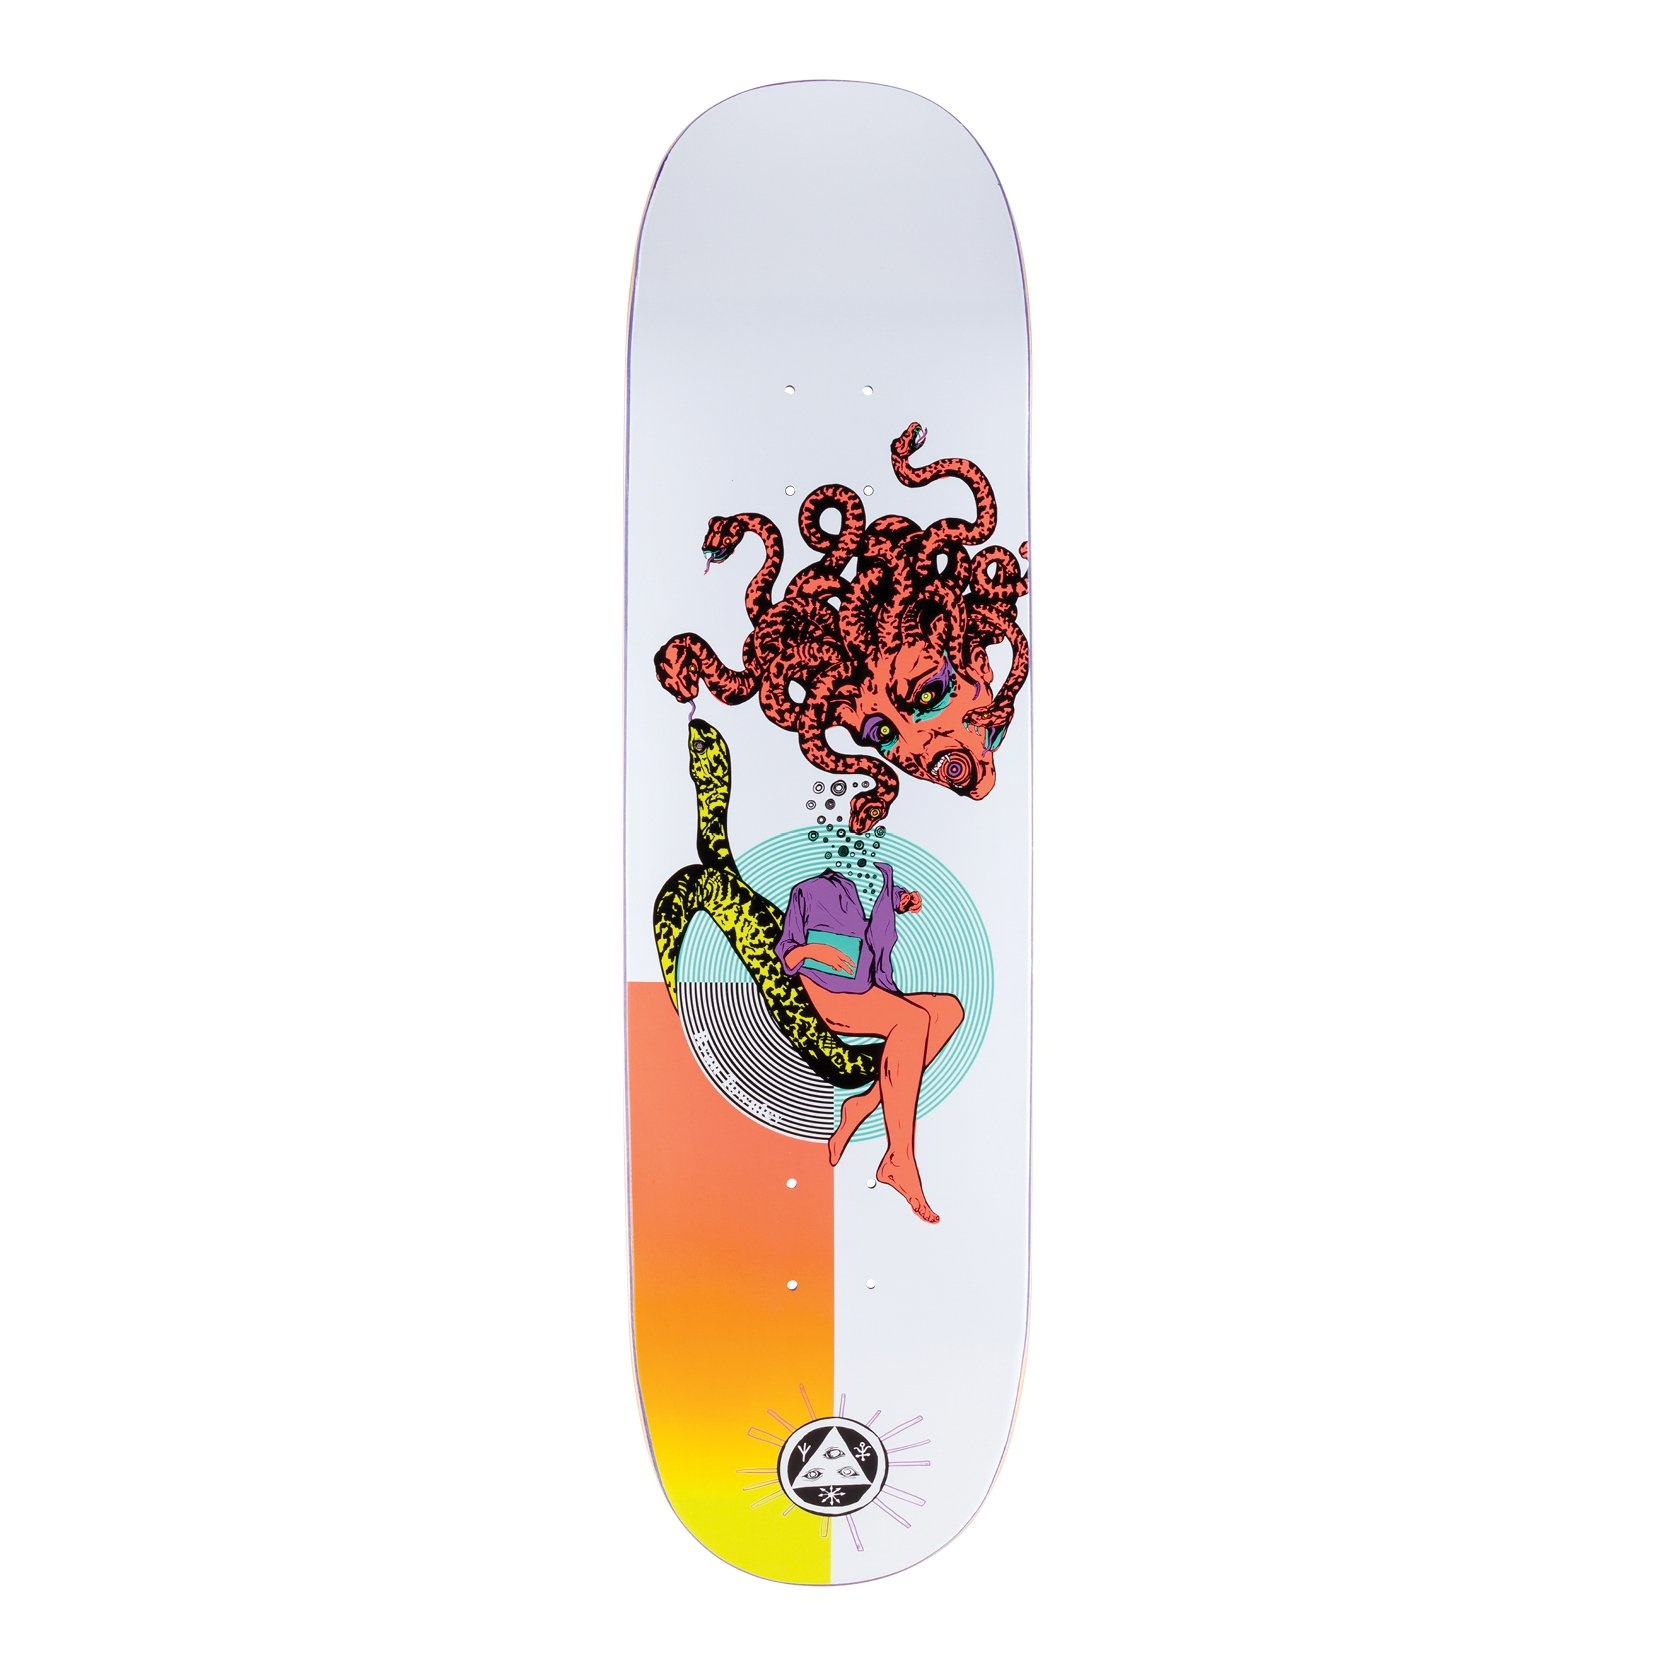 Ryan Townley Gorgon on Enenra - White/Coral - 8.5""